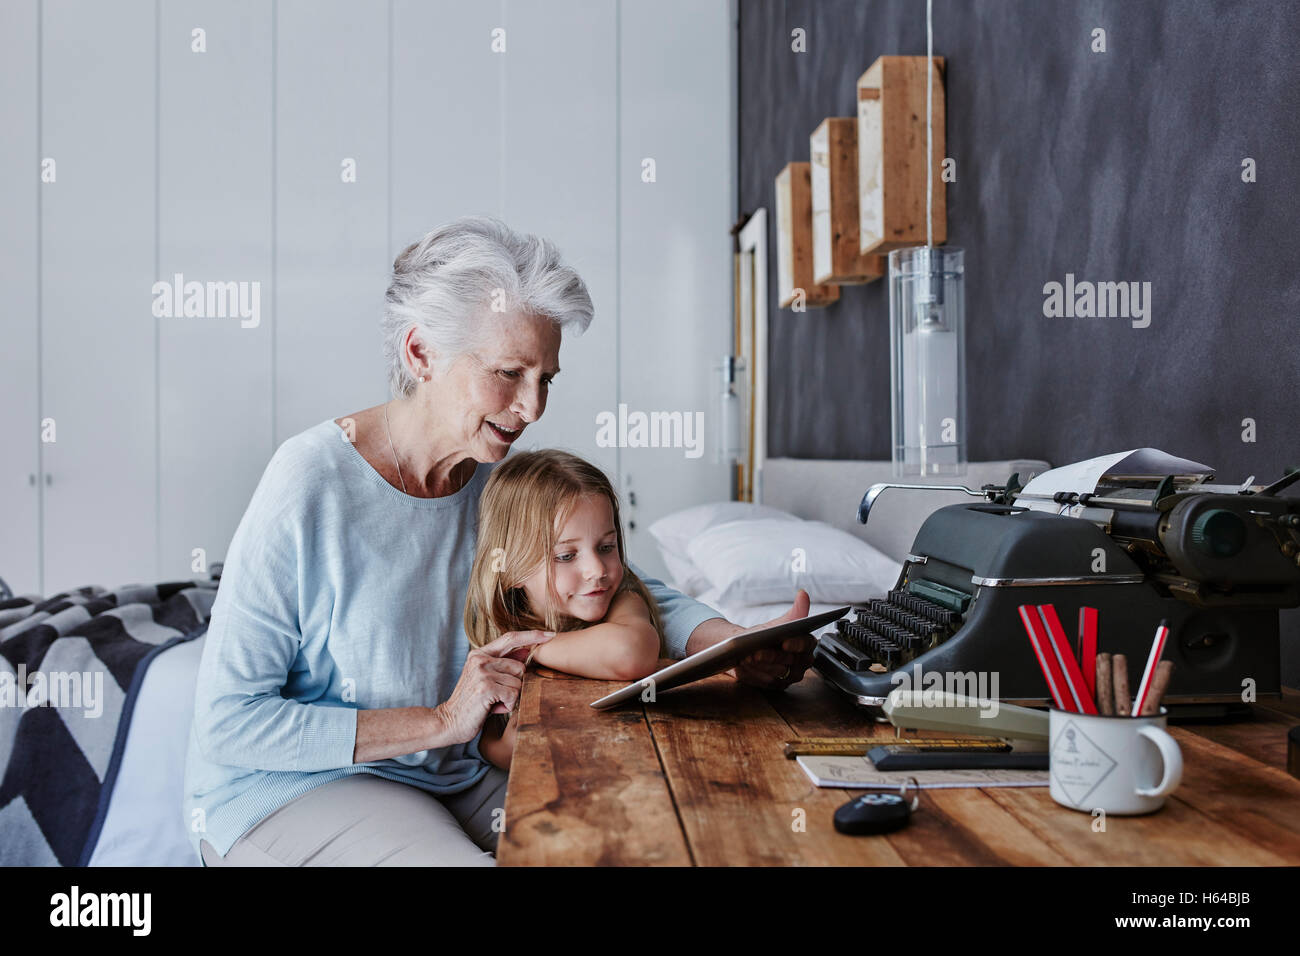 Grandmother and granddaughter looking at tablet at home Stock Photo